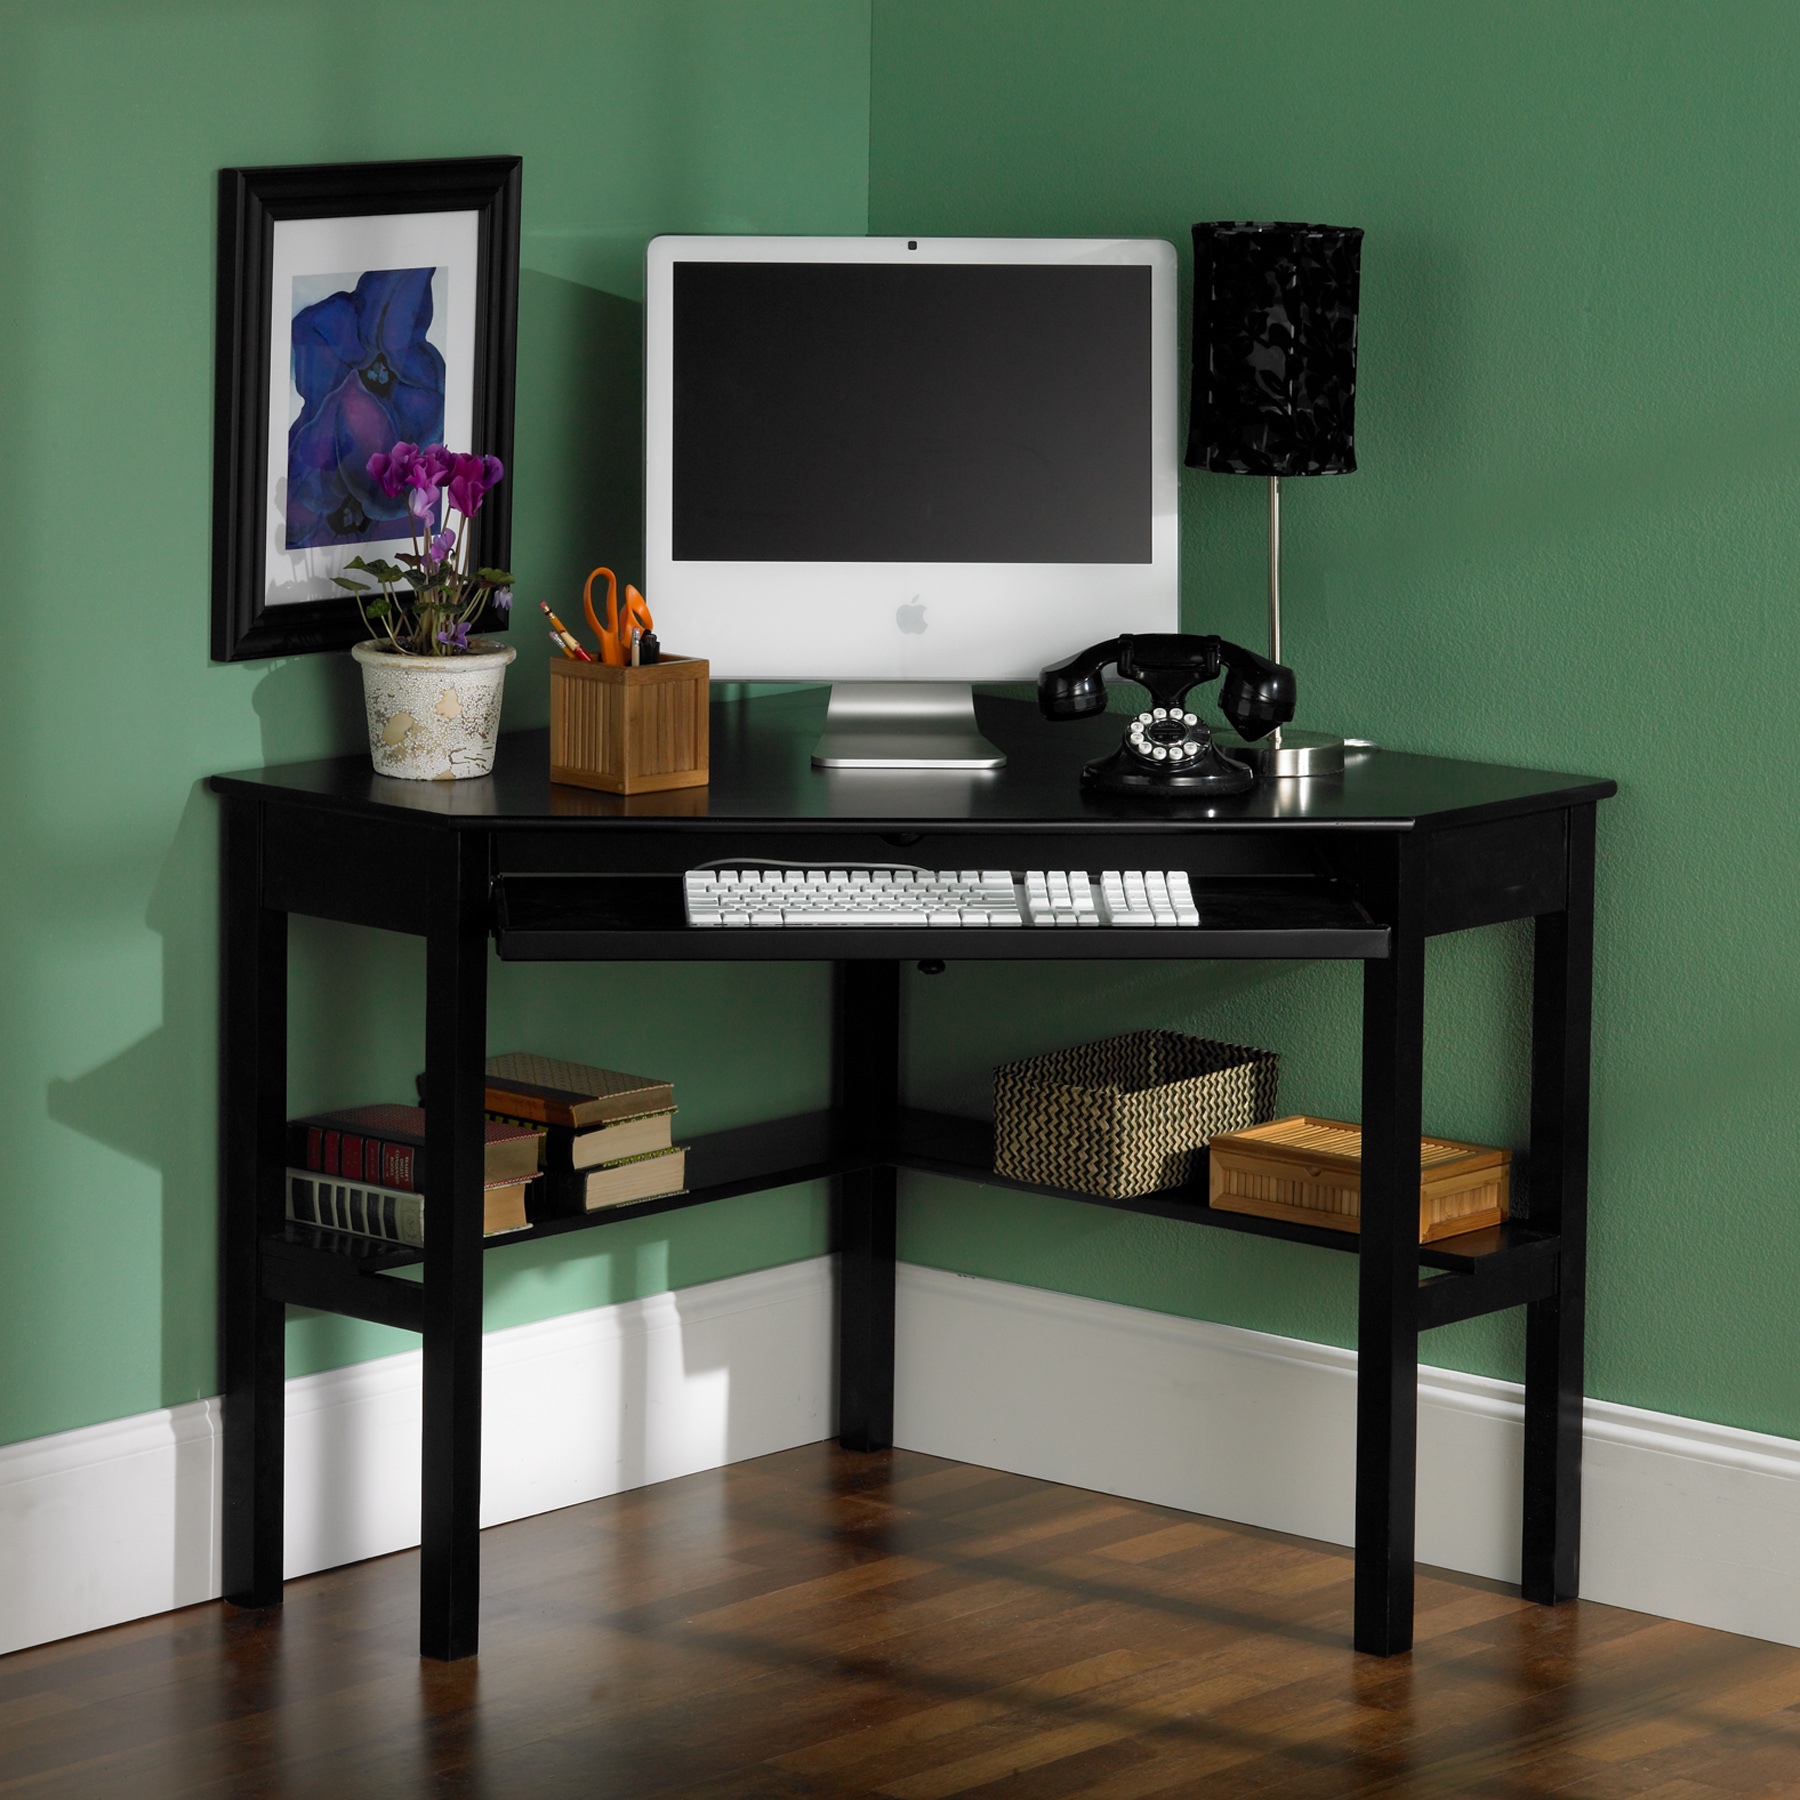 Home Computer Desks & Accessories Corner Computer Desk - Black